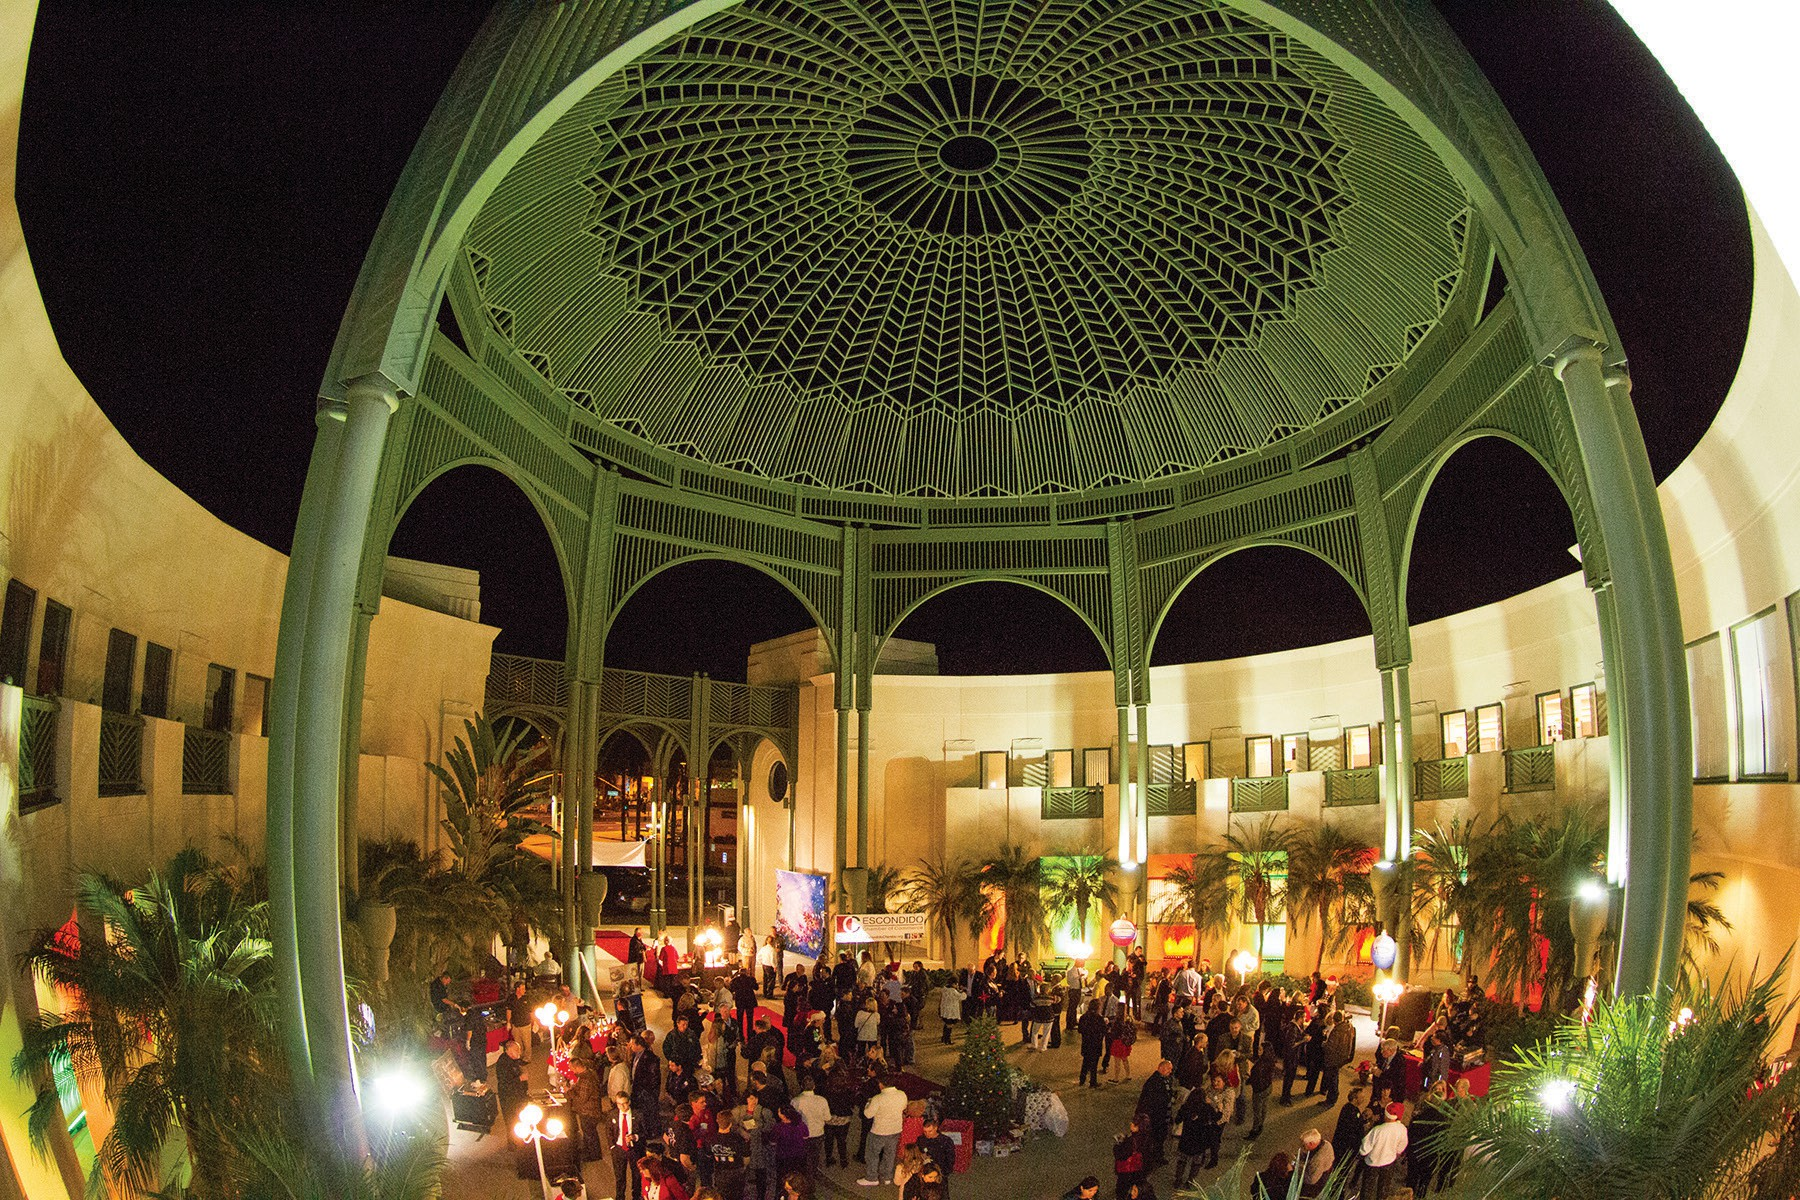 The rotunda of the Escondido City Hall will be lit up for one night during the Community in Unity event December 1st.